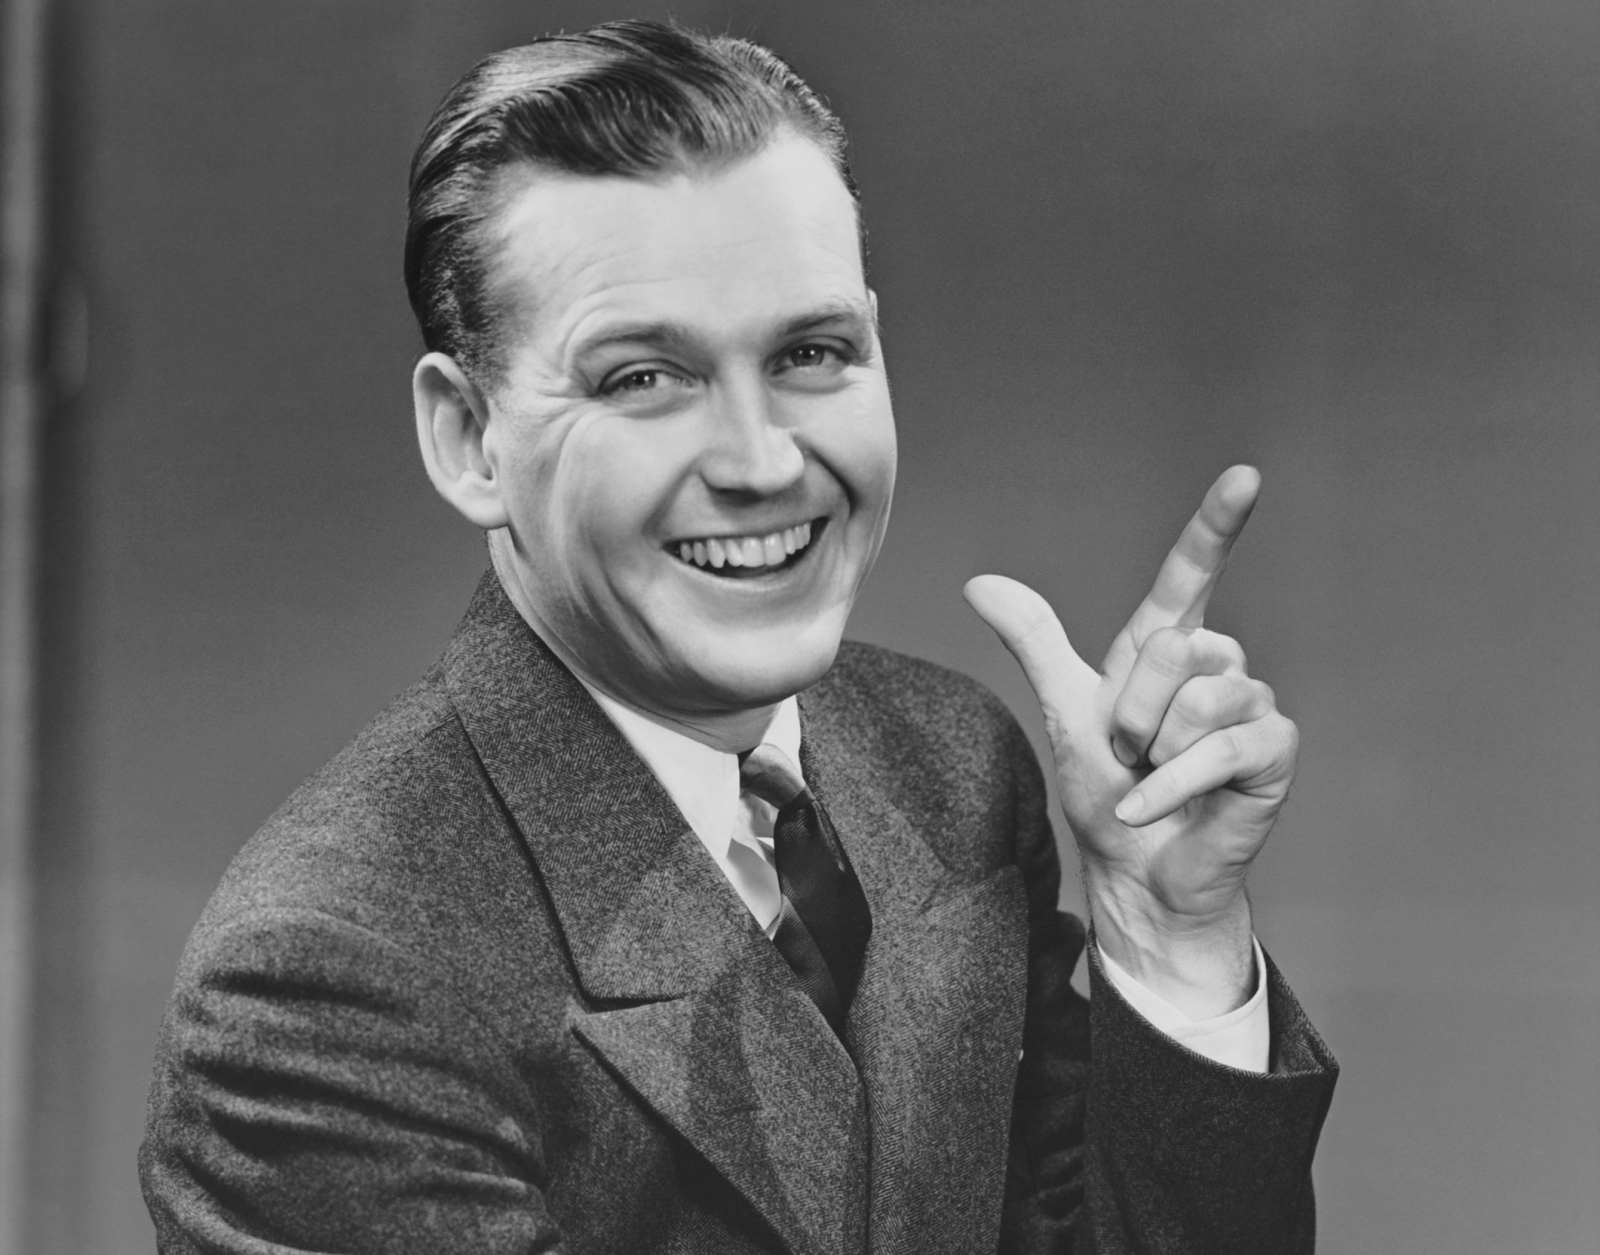 Man smiling and gesturing